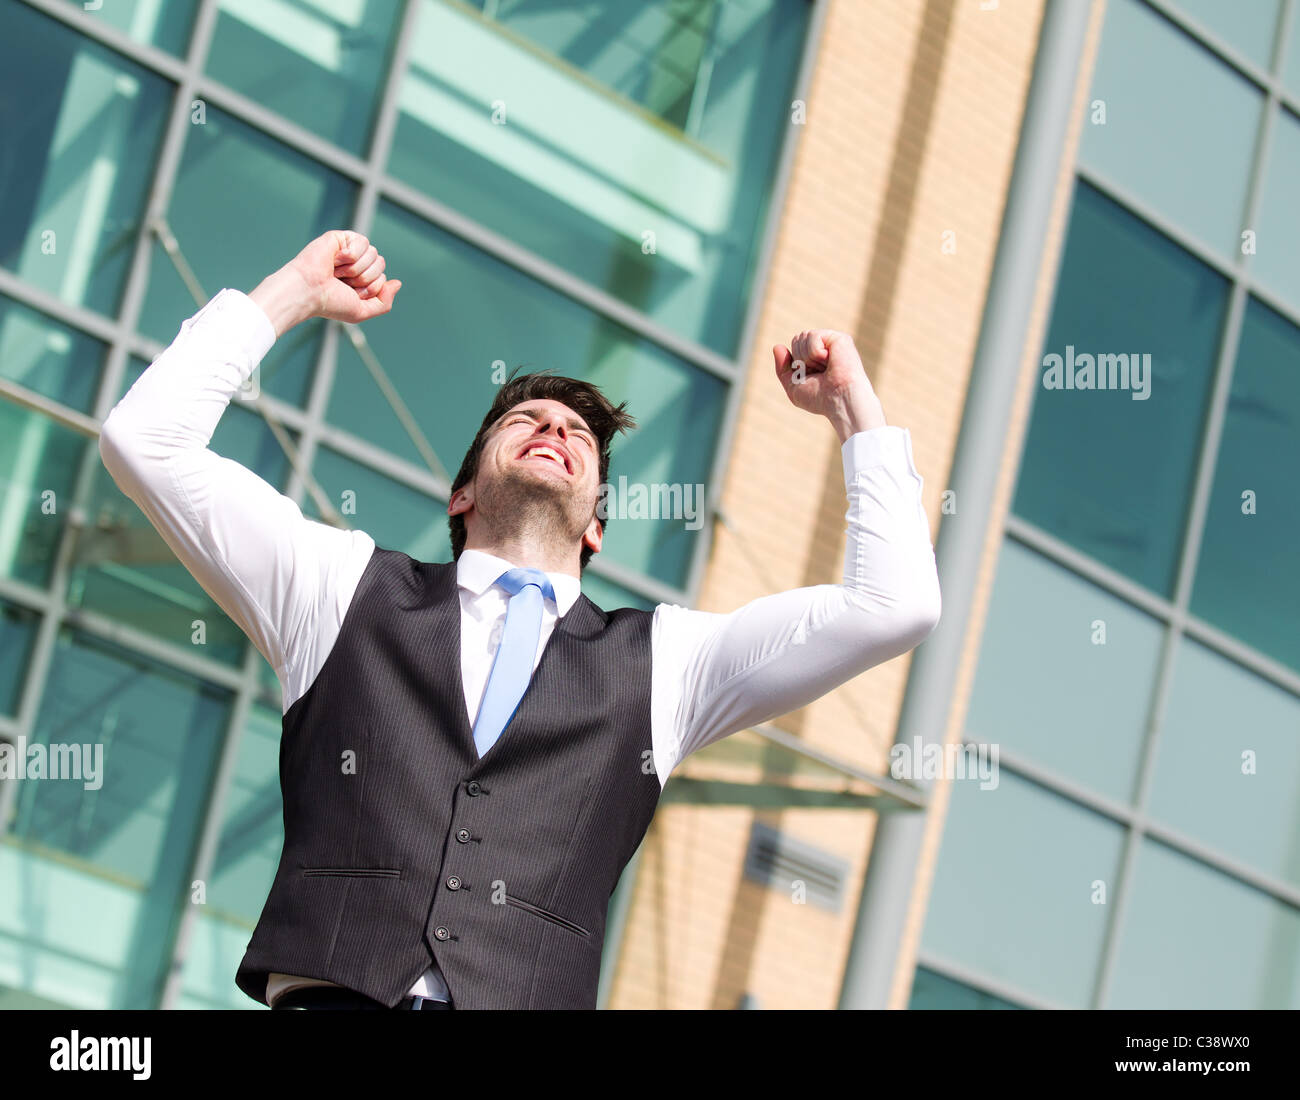 Man with arms in the air - Stock Image